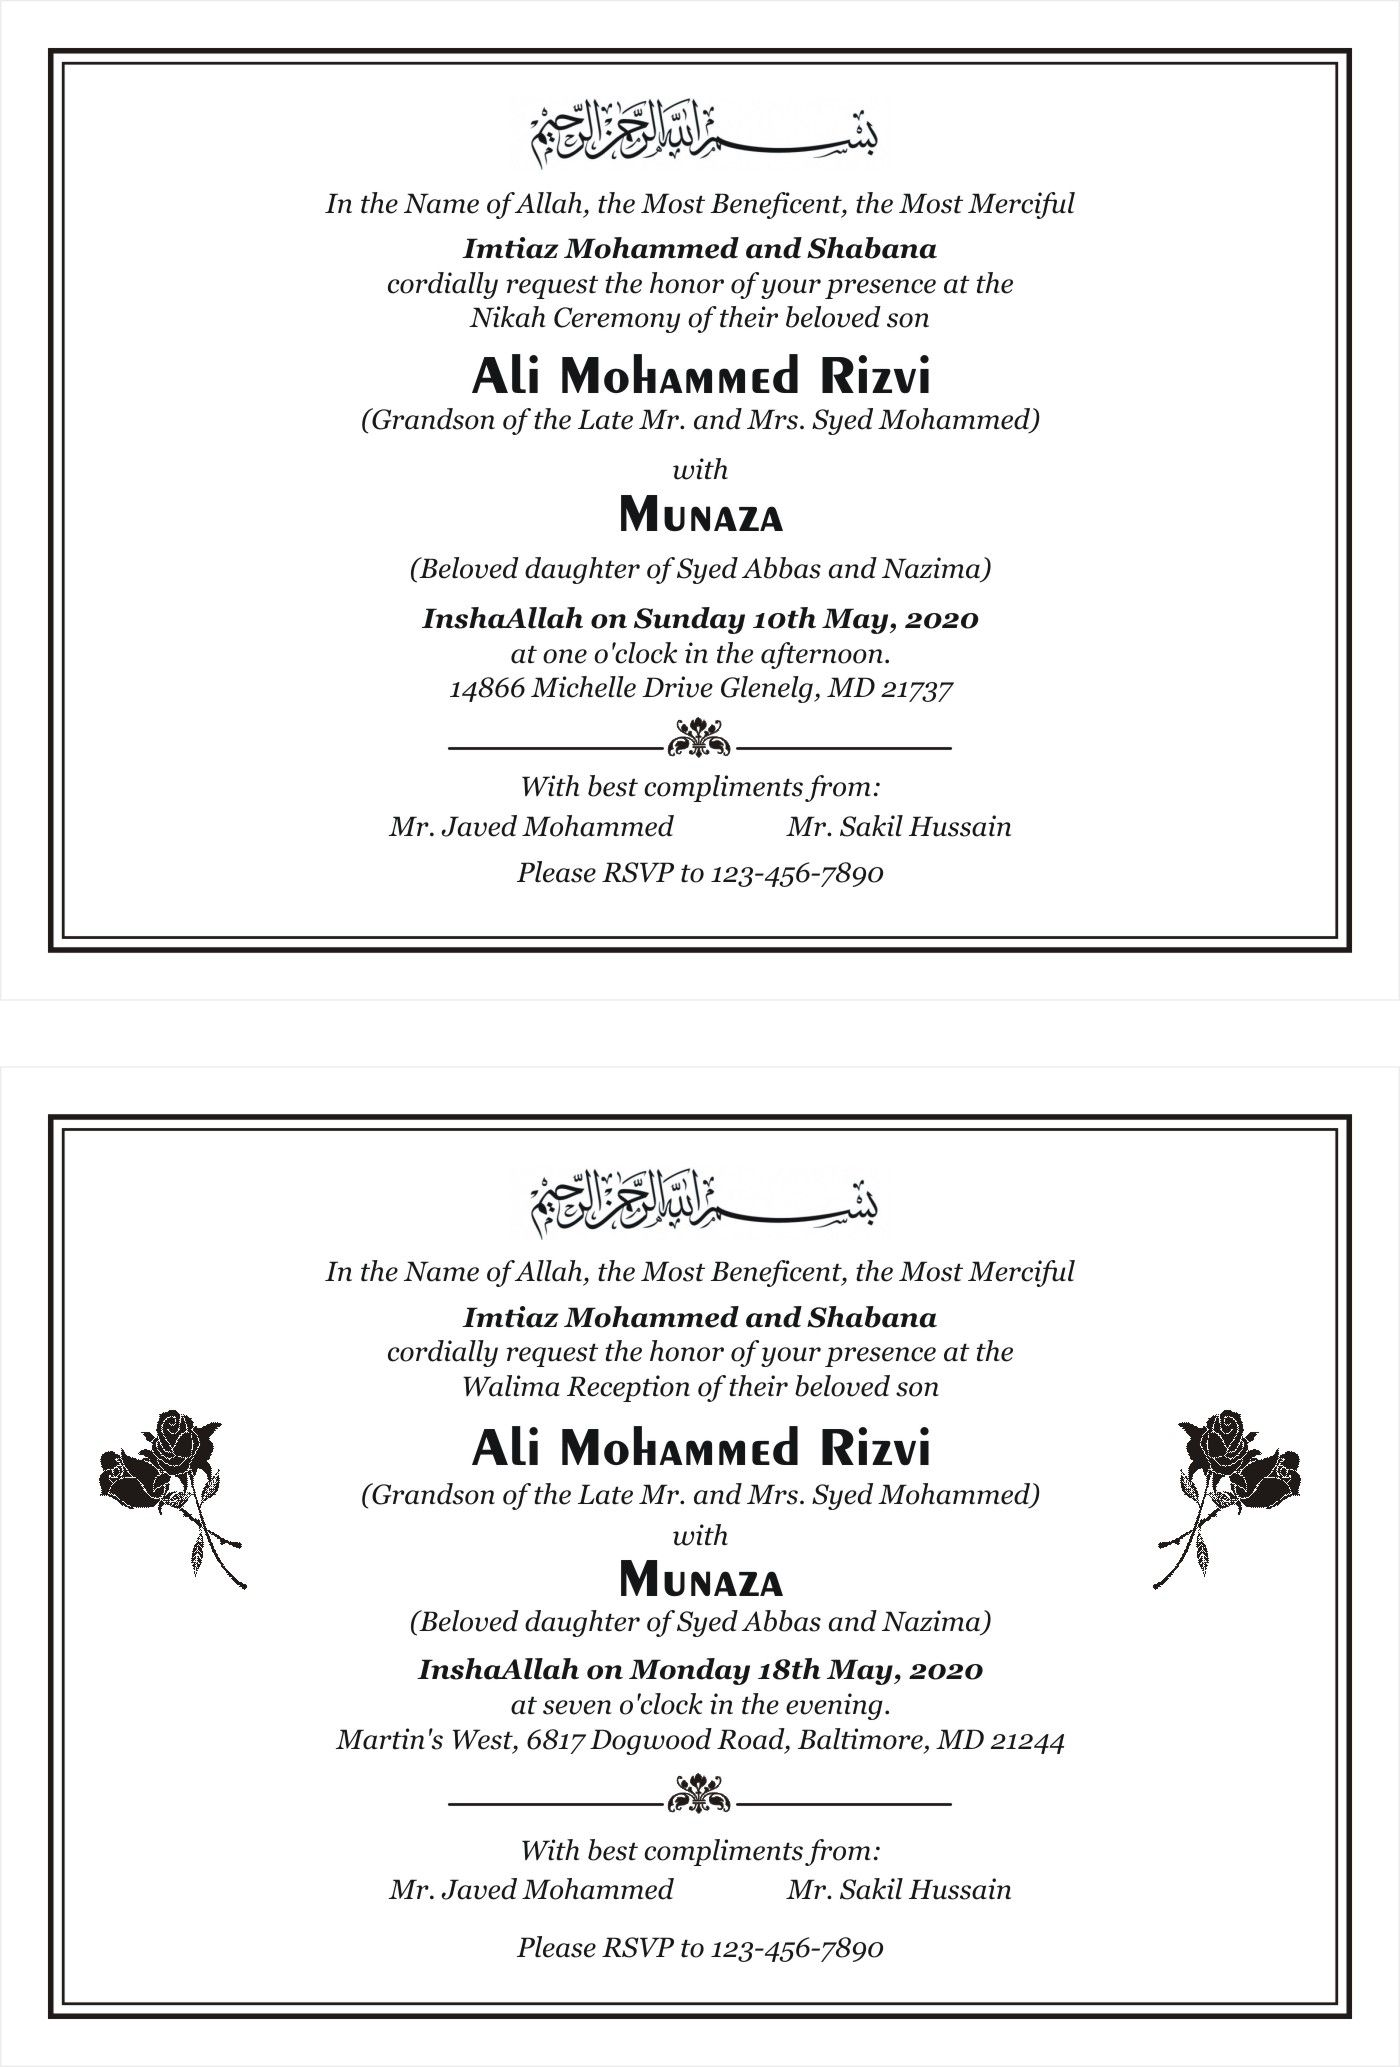 Islamic Wedding Cards Wordings Muslim Wedding Cards Islamic Wedding Pakistani Wedding Cards